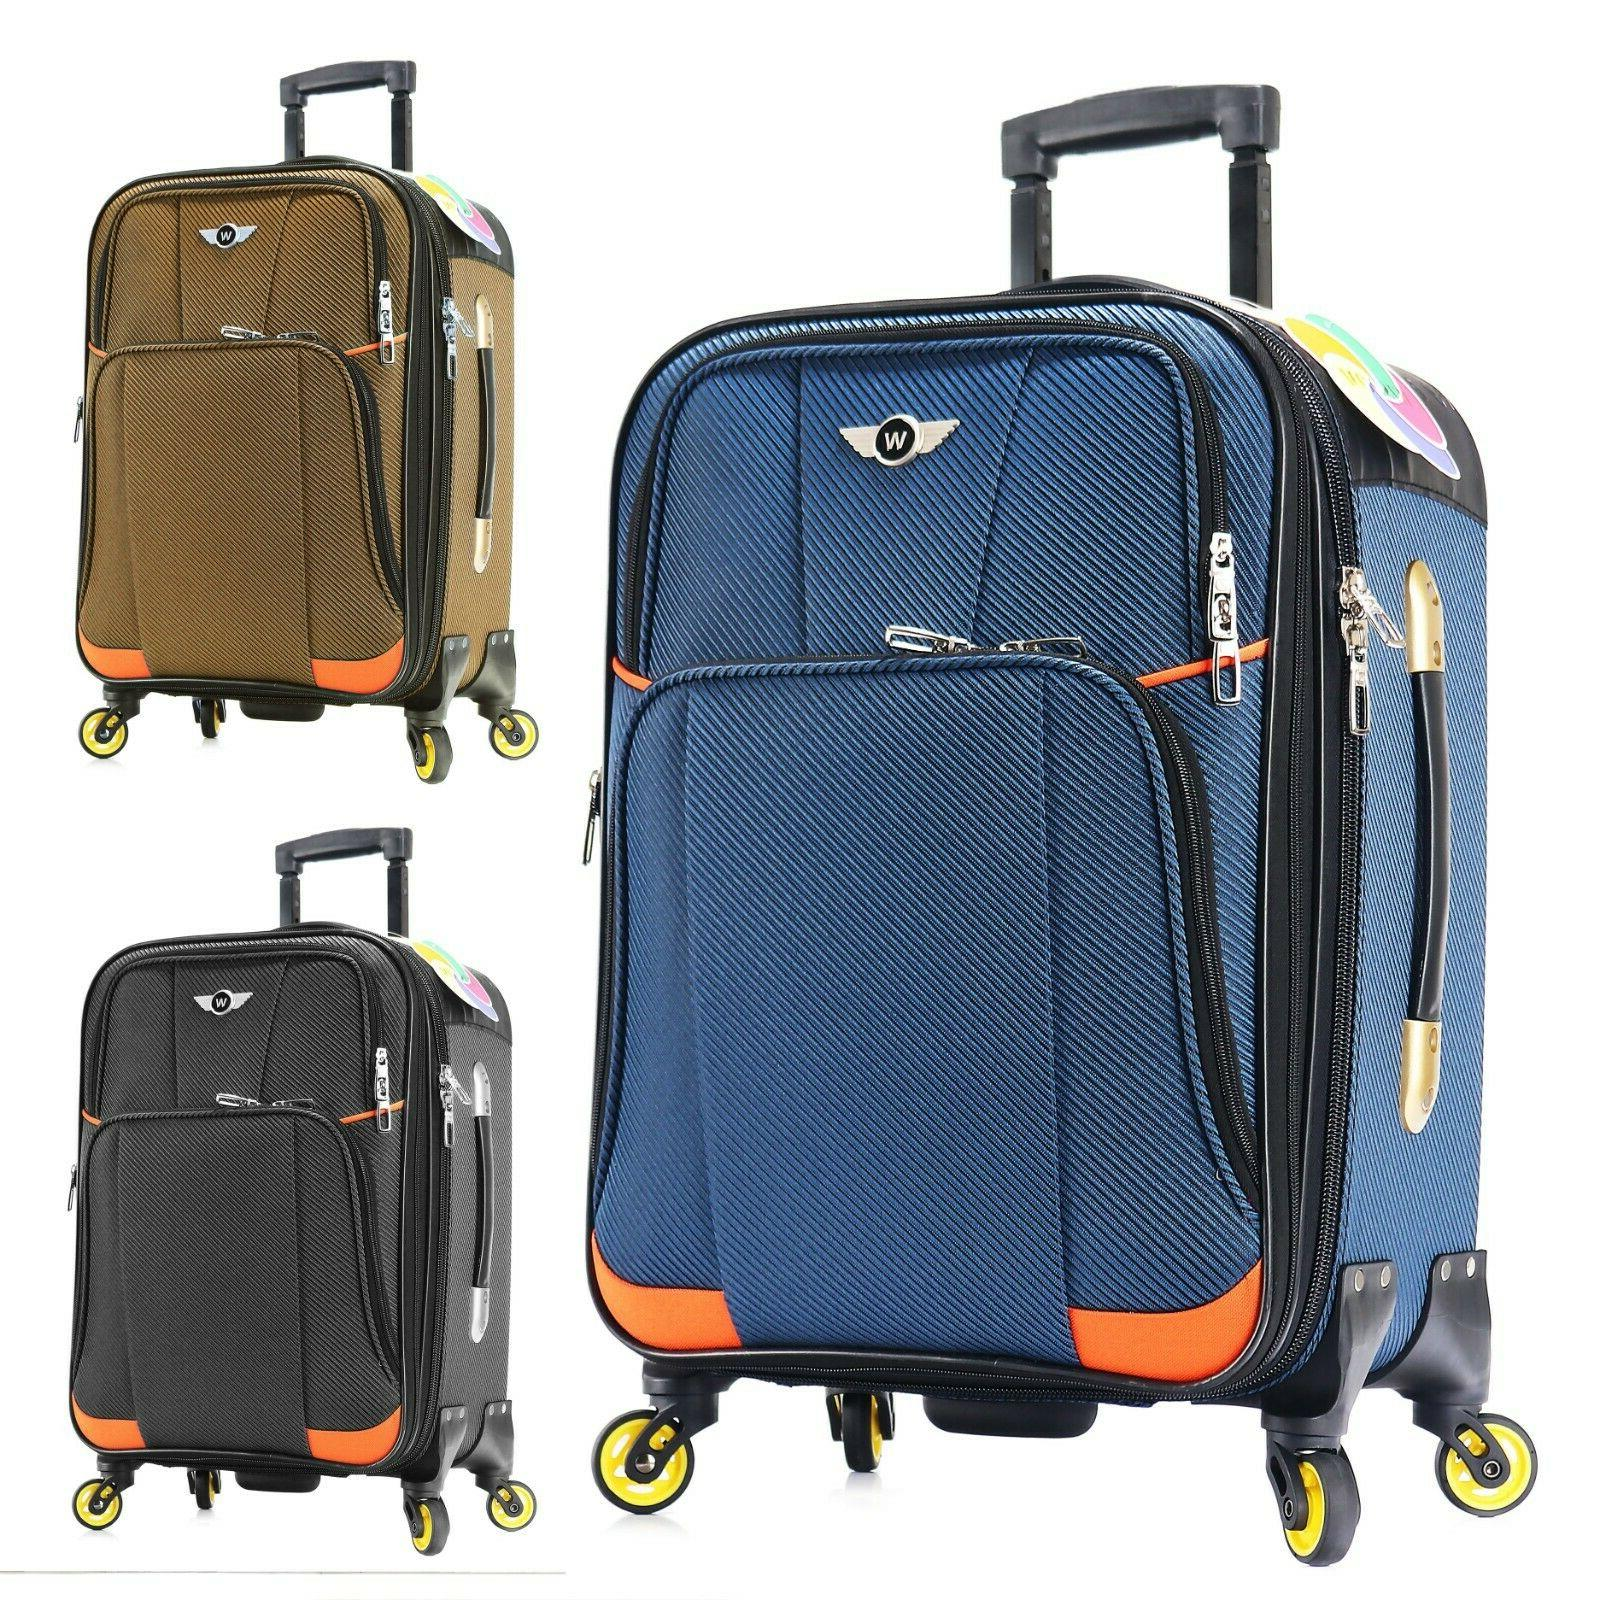 carry on luggage 22x14x9 travel lightweight rolling